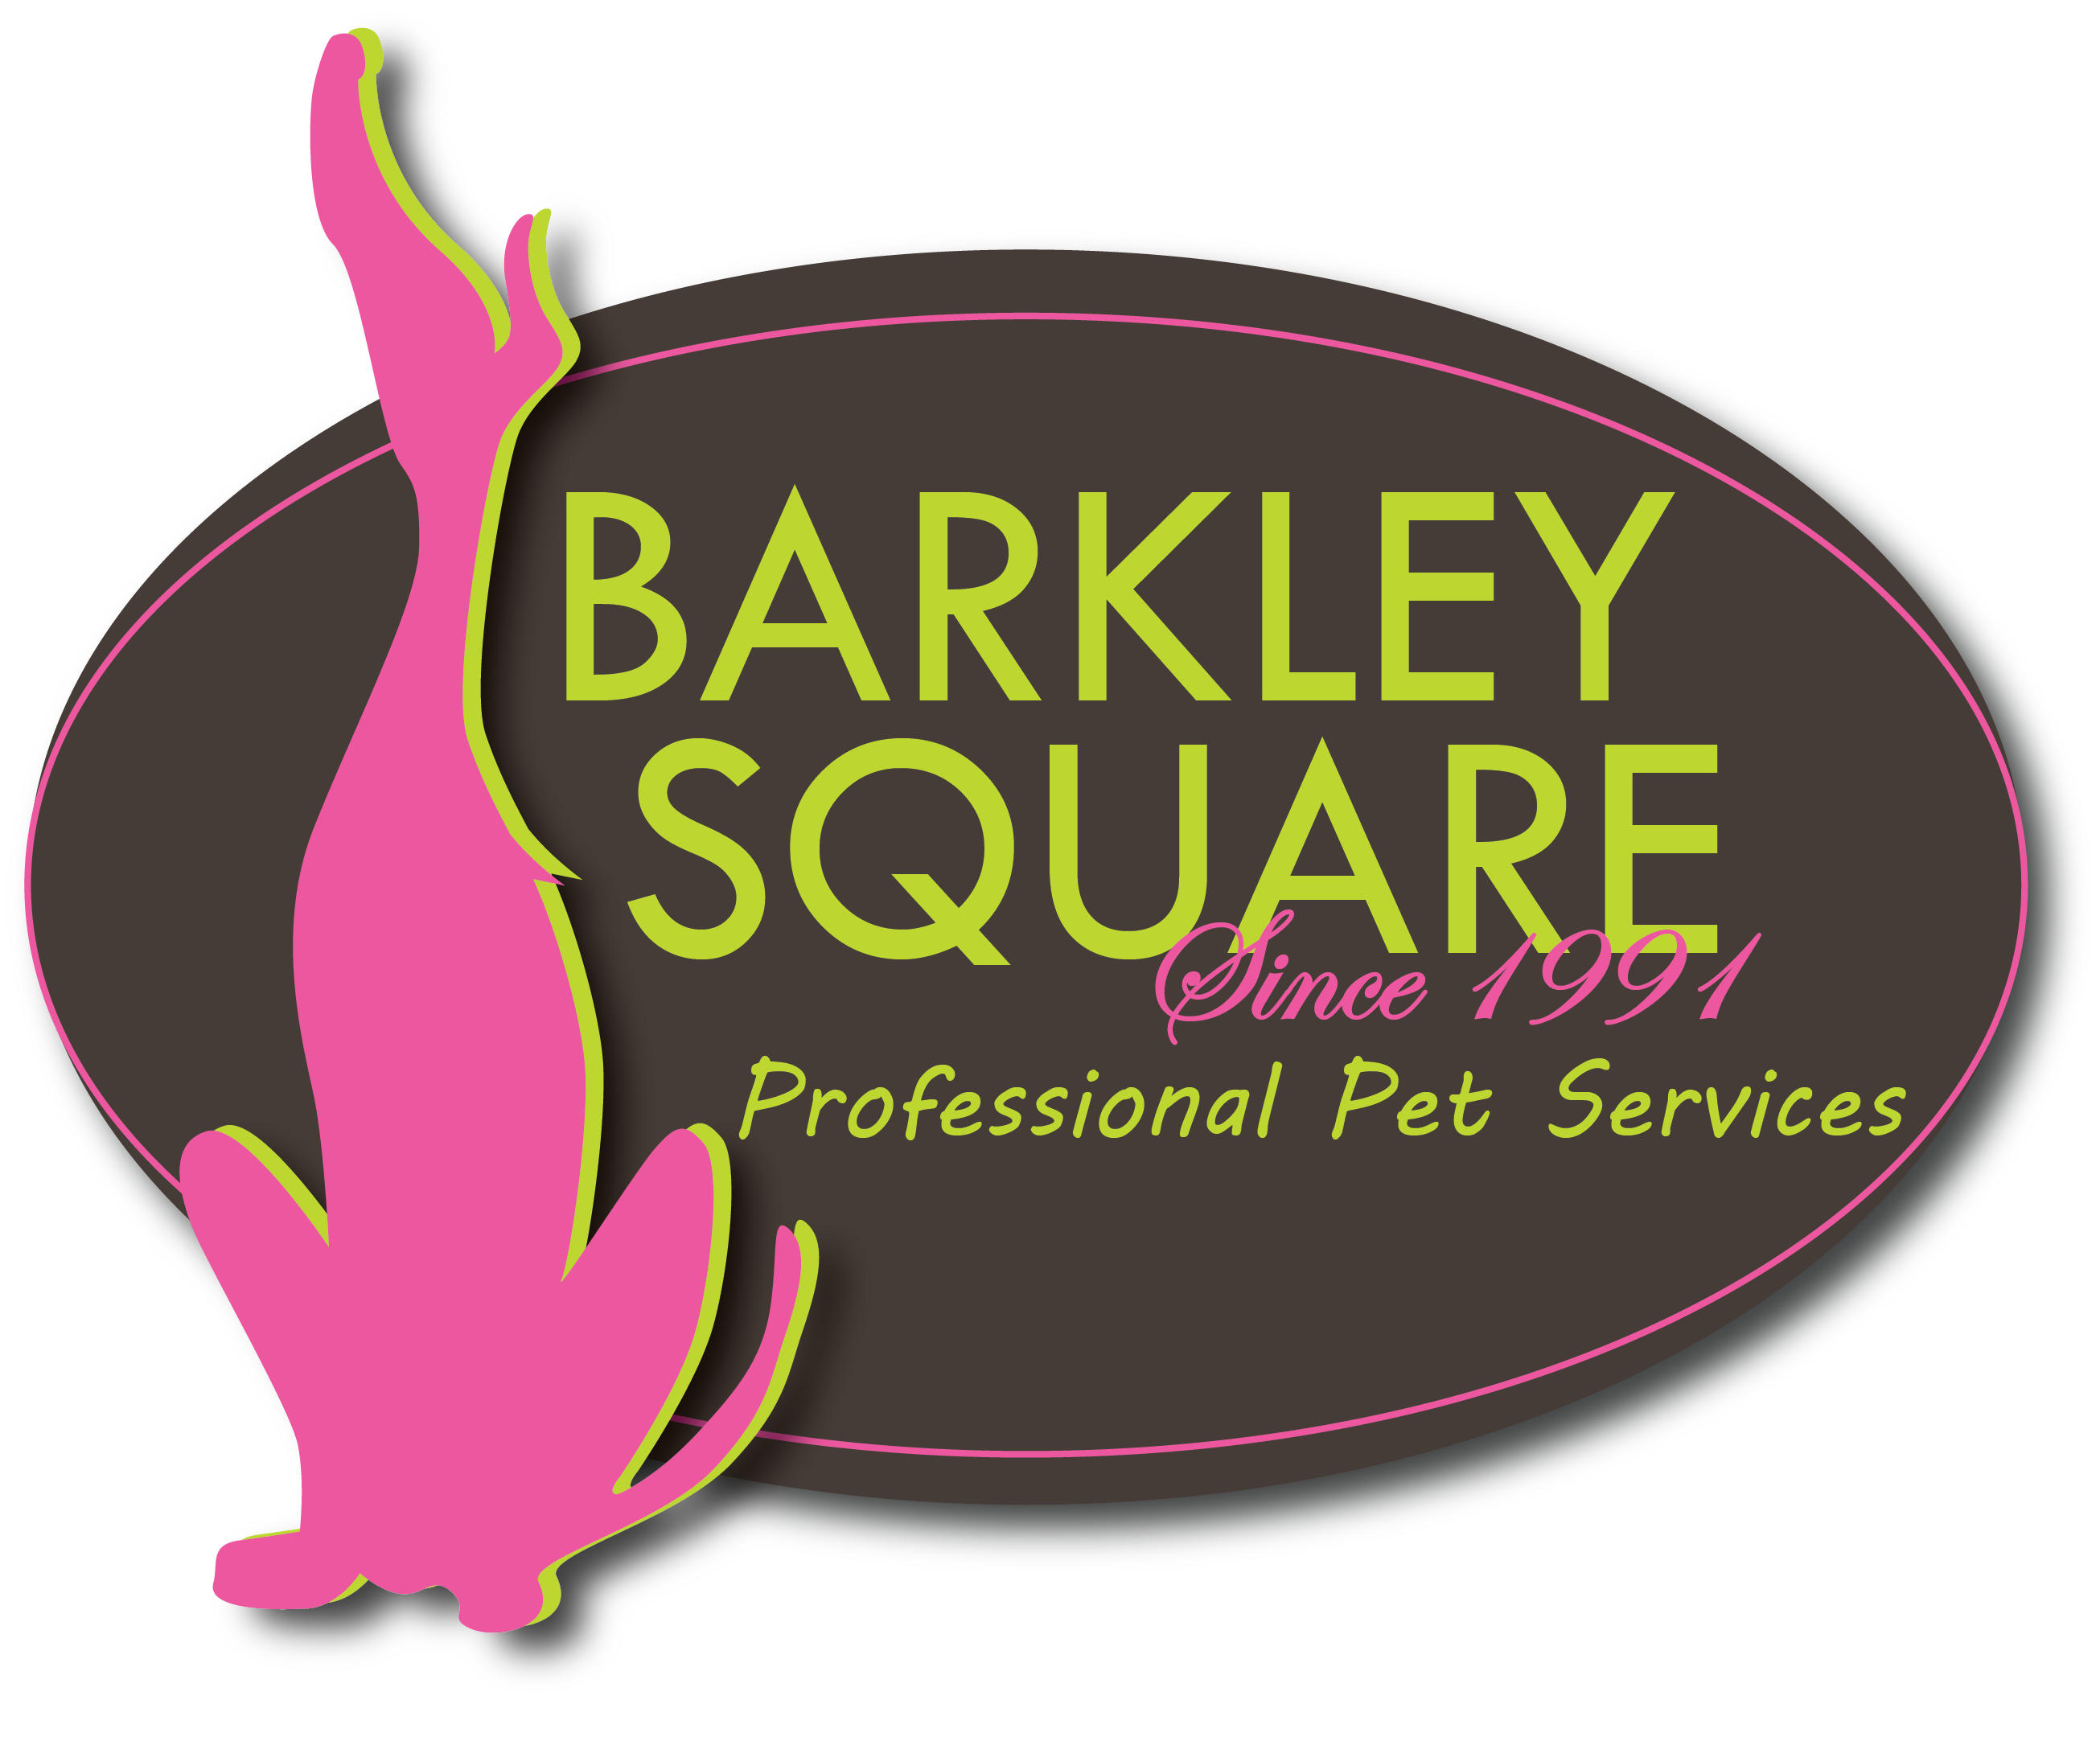 Barkley Square Logo.png